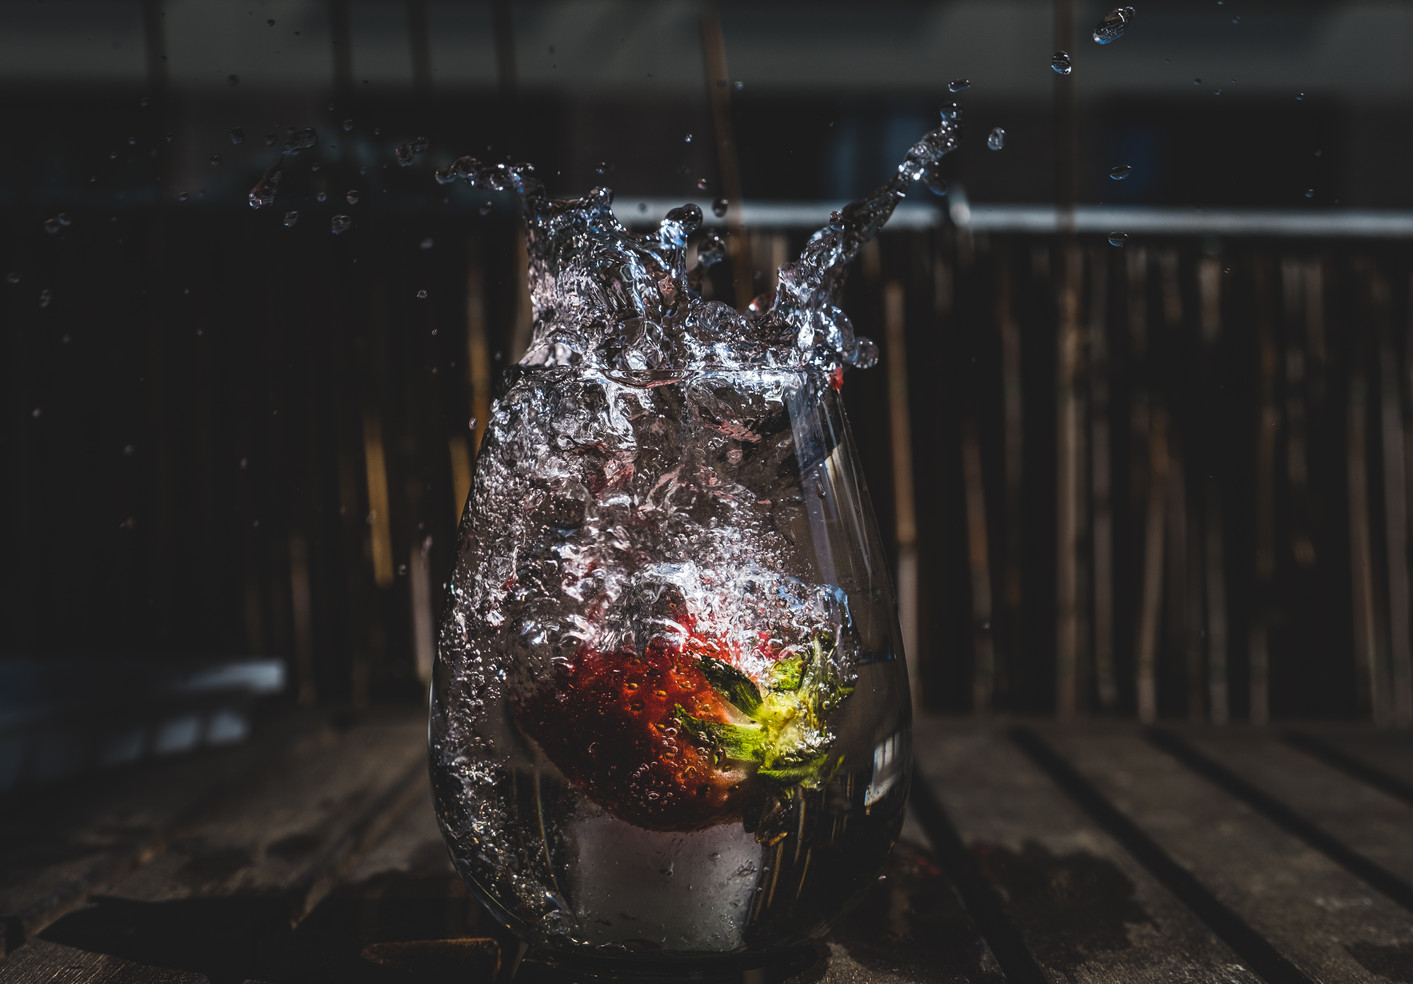 Strawberry dropping in a glass